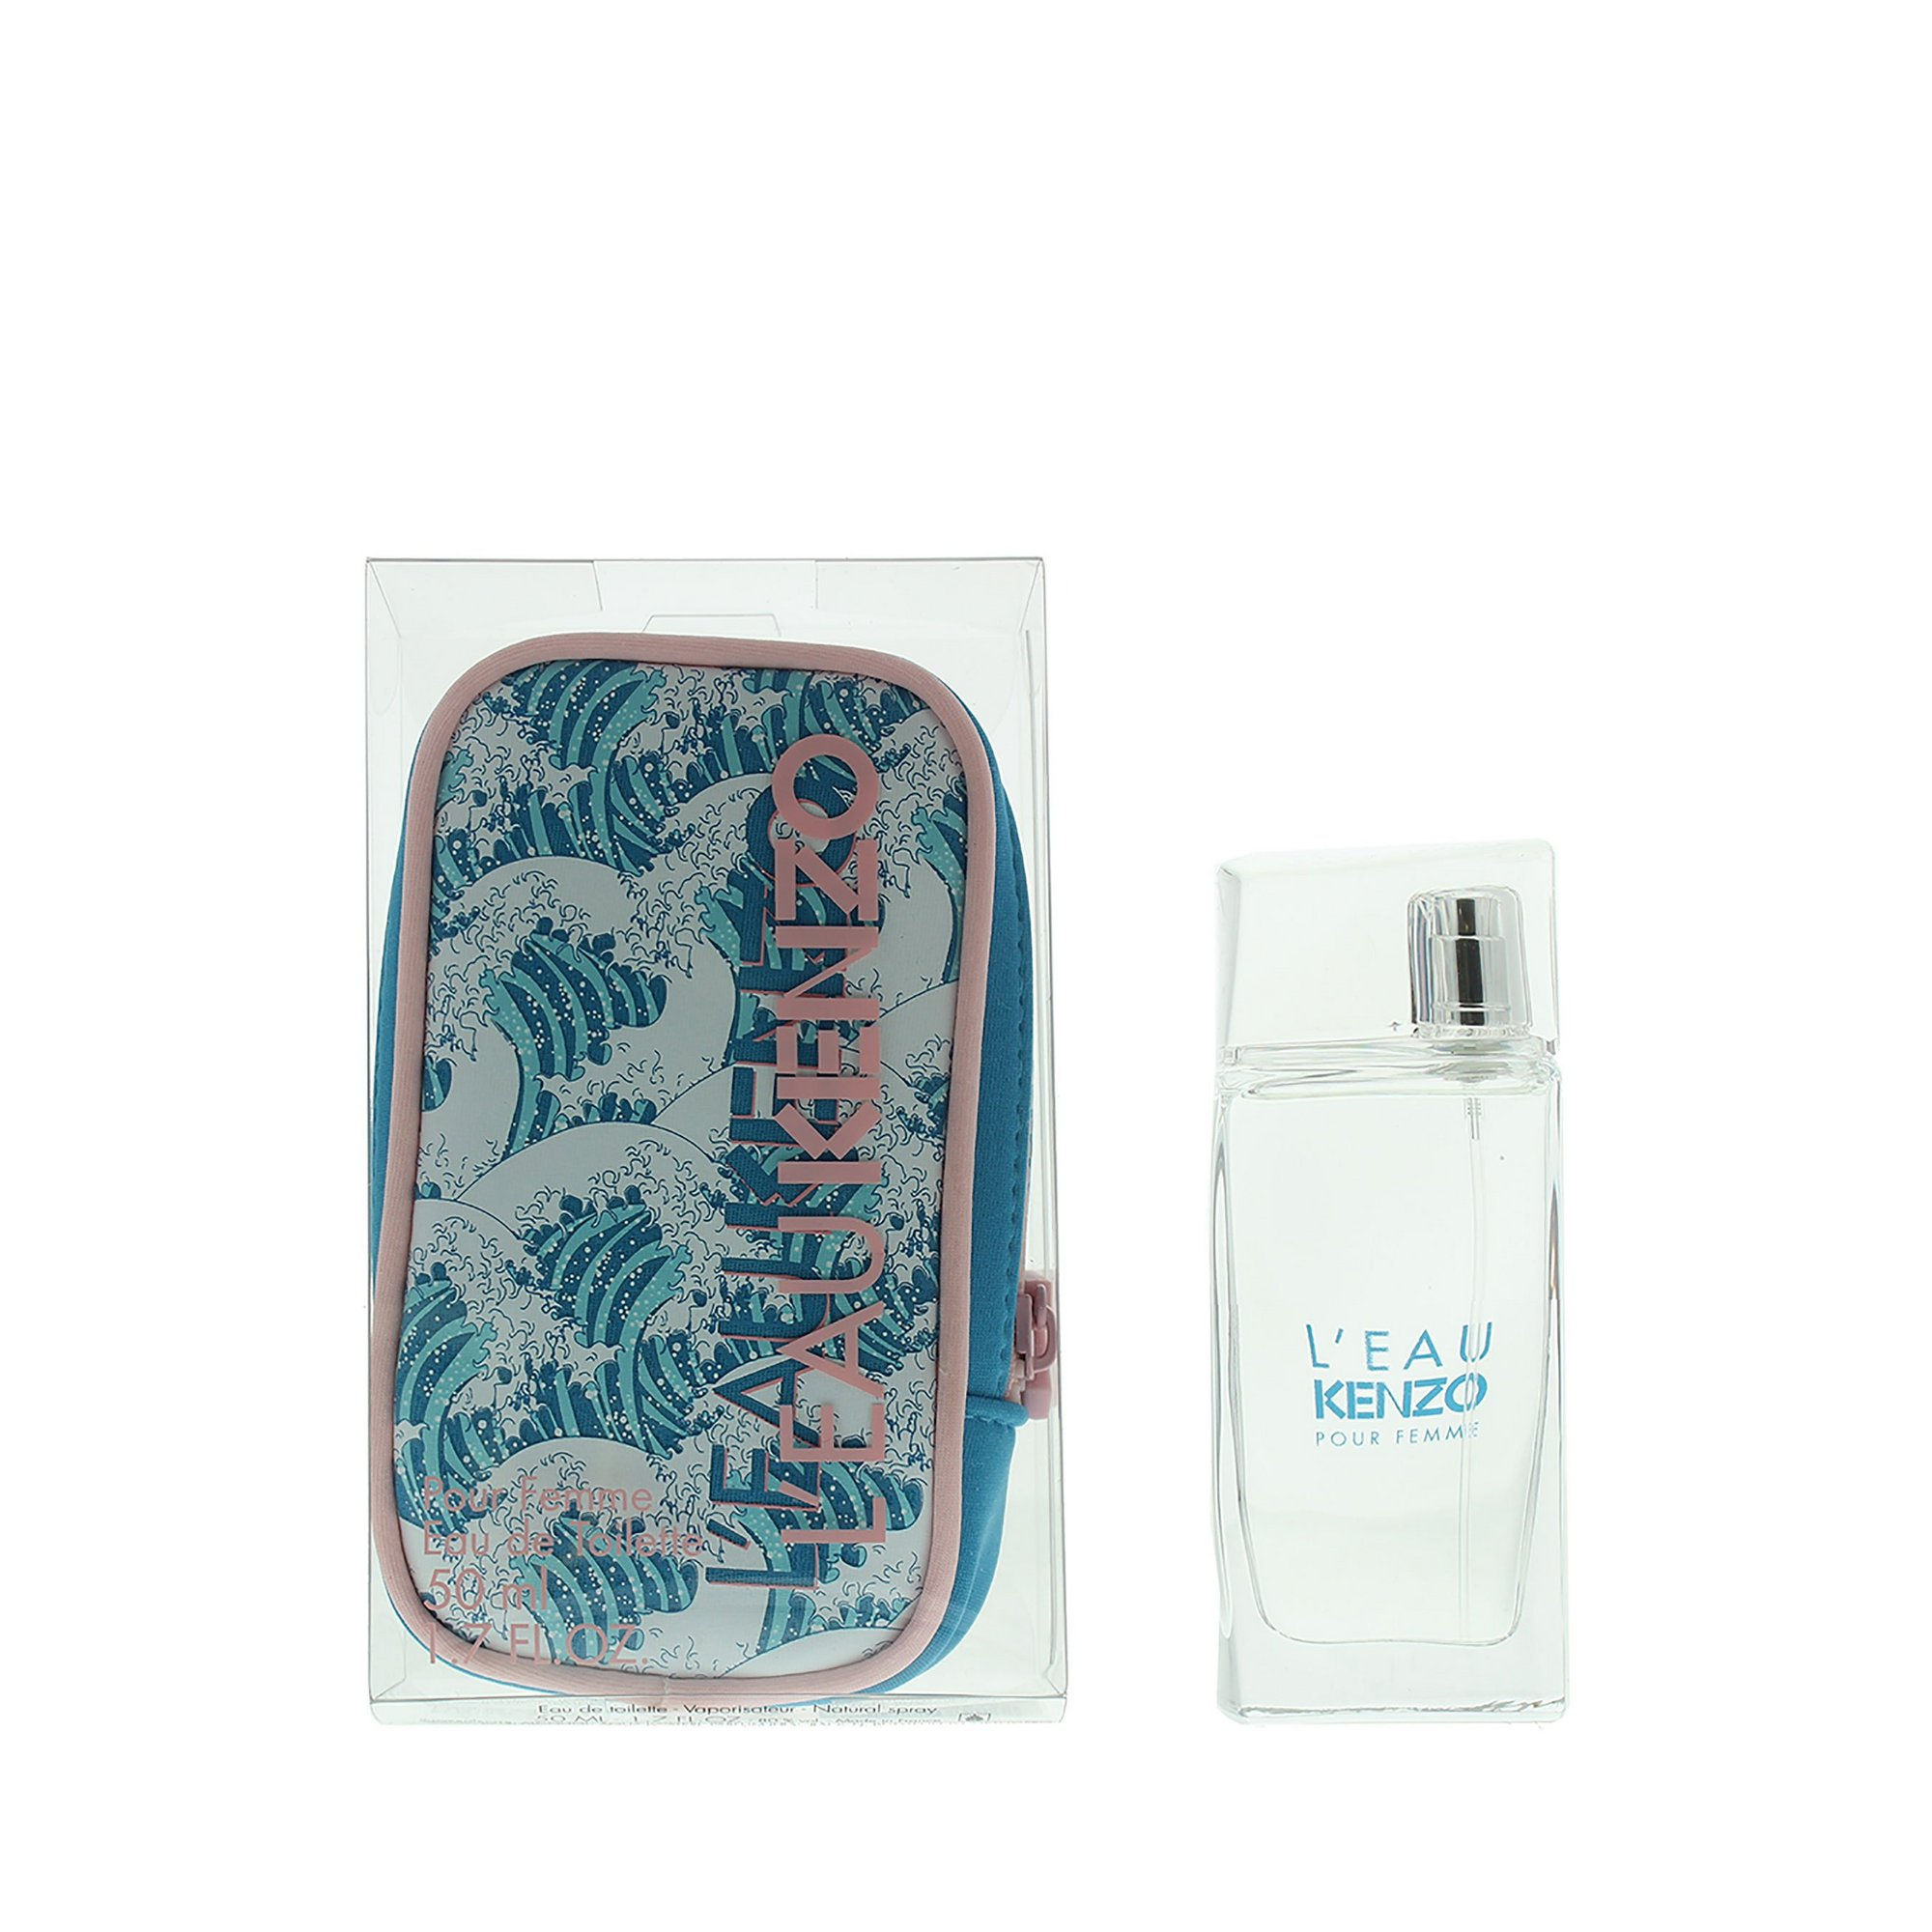 Image of Kenzo Leau Pour Femme Neo Edition 50ml EDT Gift Set